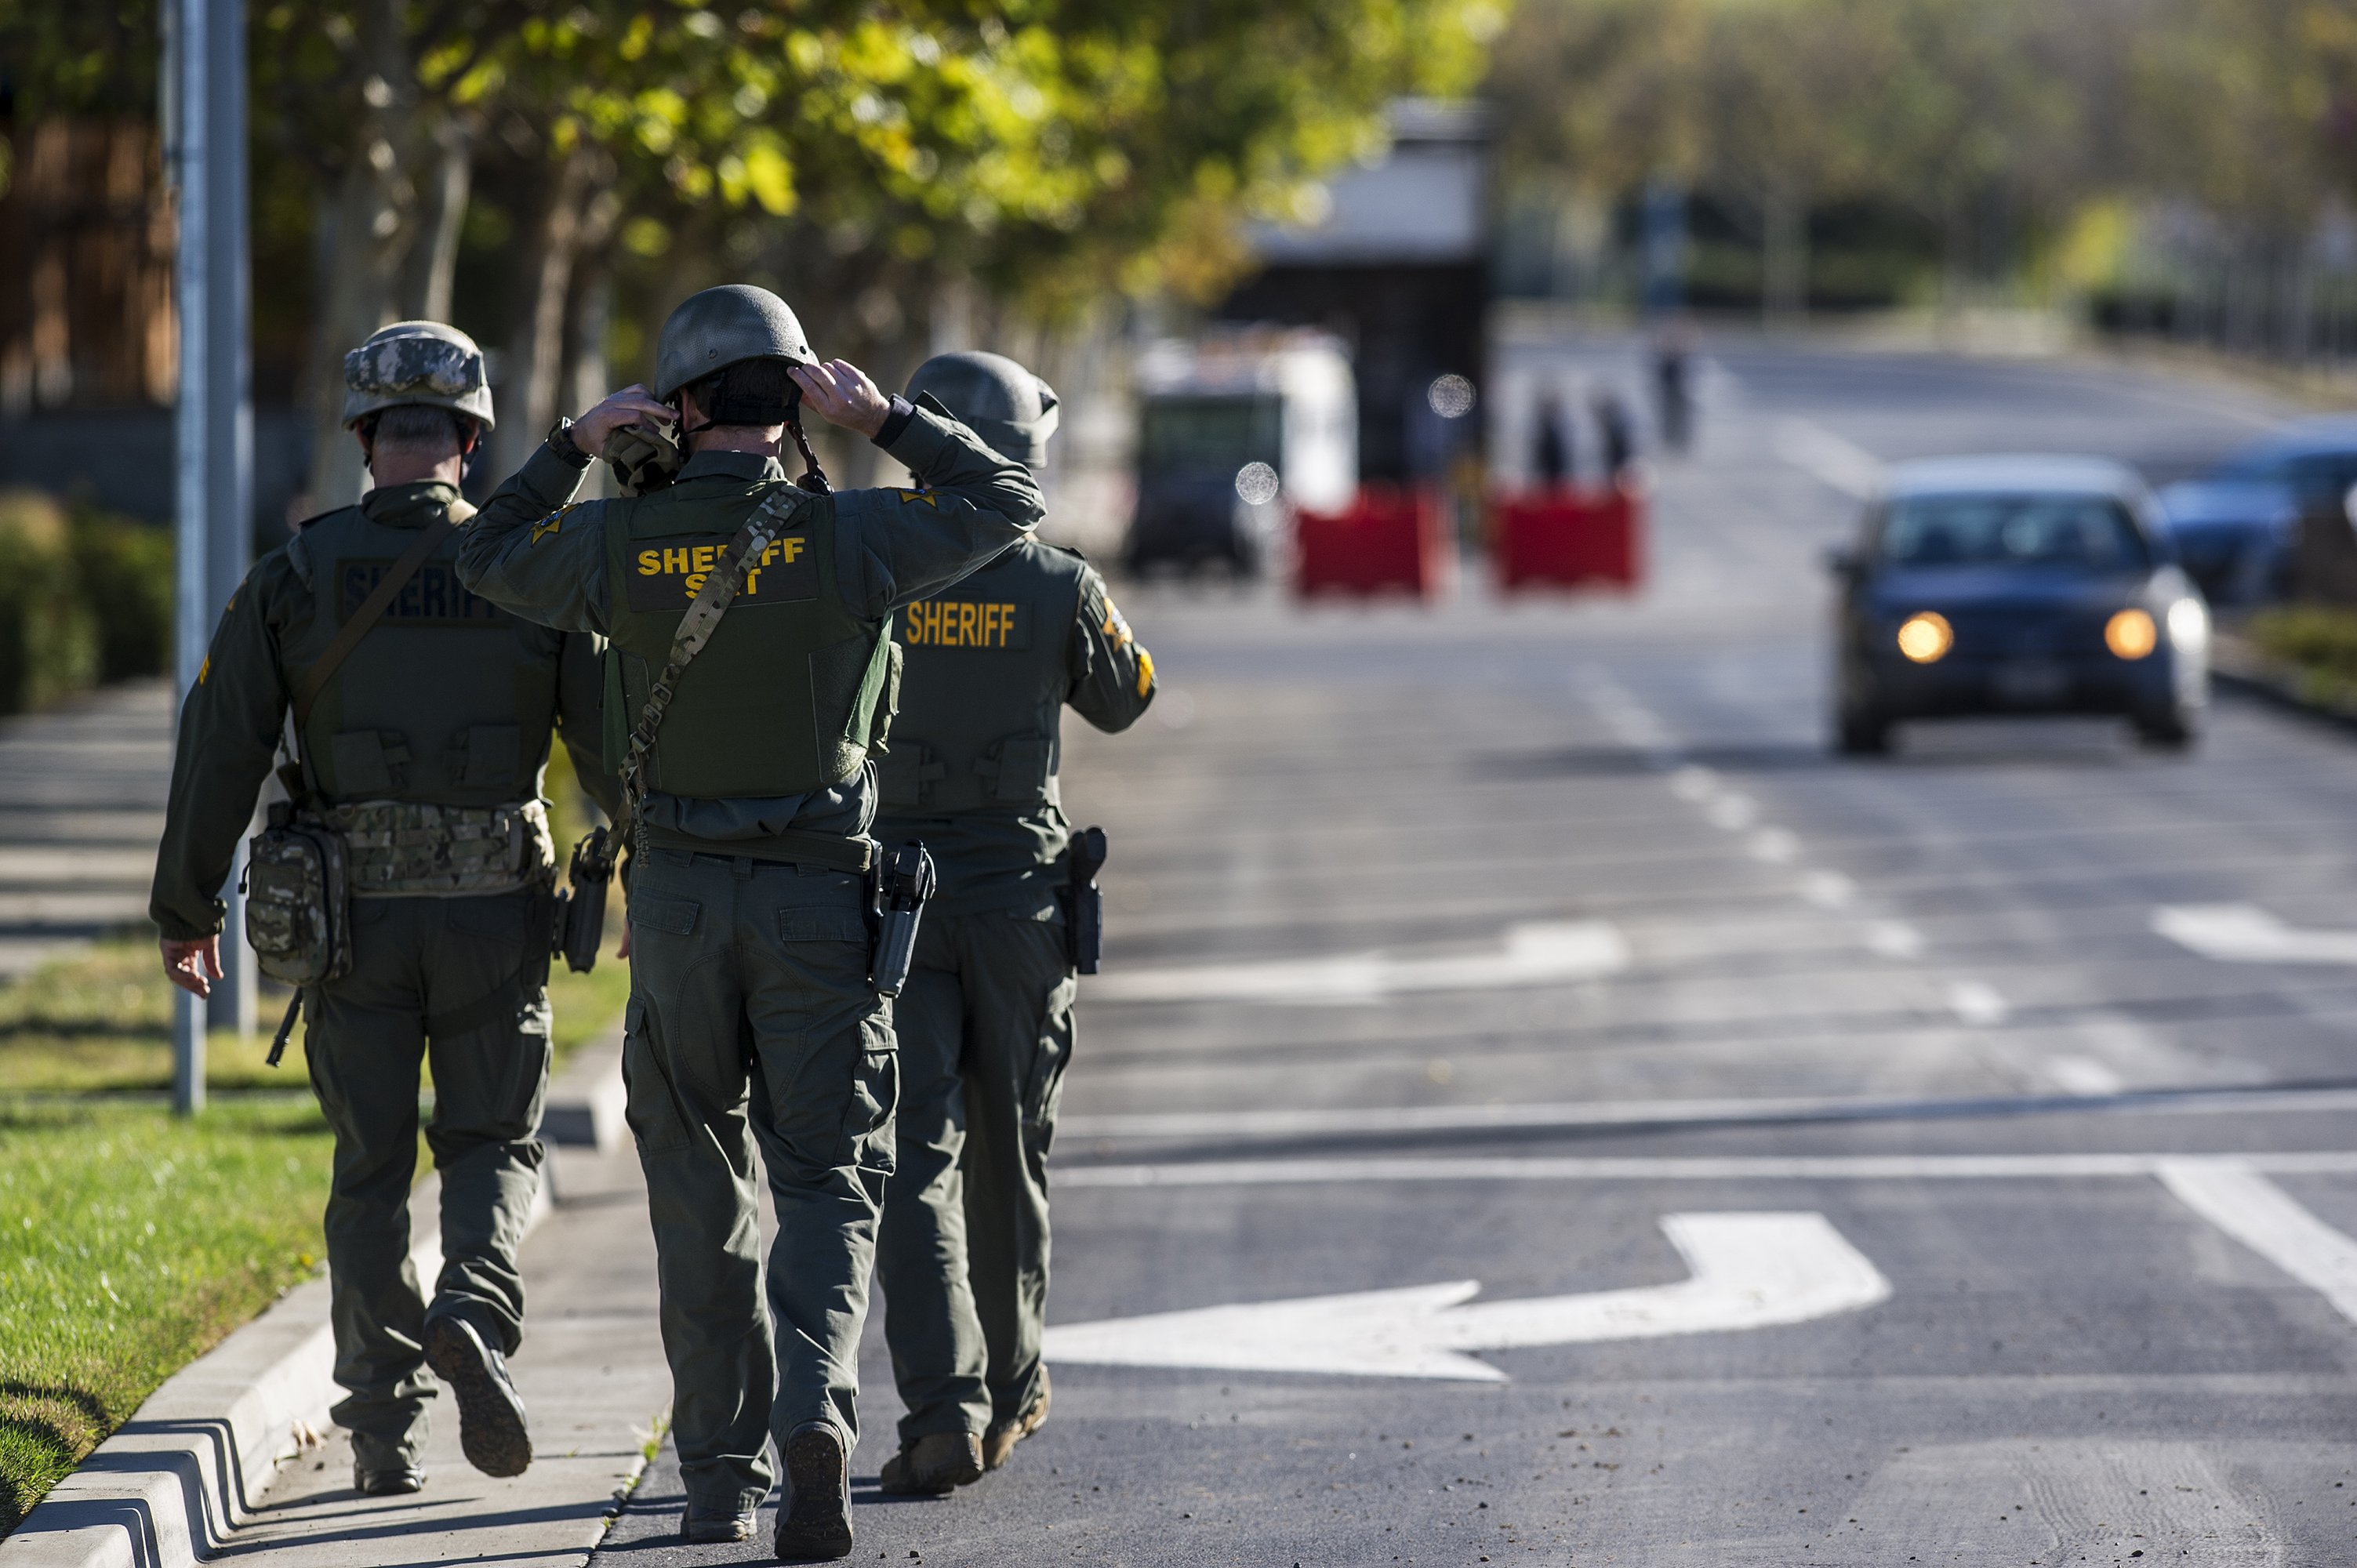 Merced County Sheriff SWAT members enter the University of California, Merced campus after a reported stabbing in Merced, Calif. on Nov. 4, 2015.